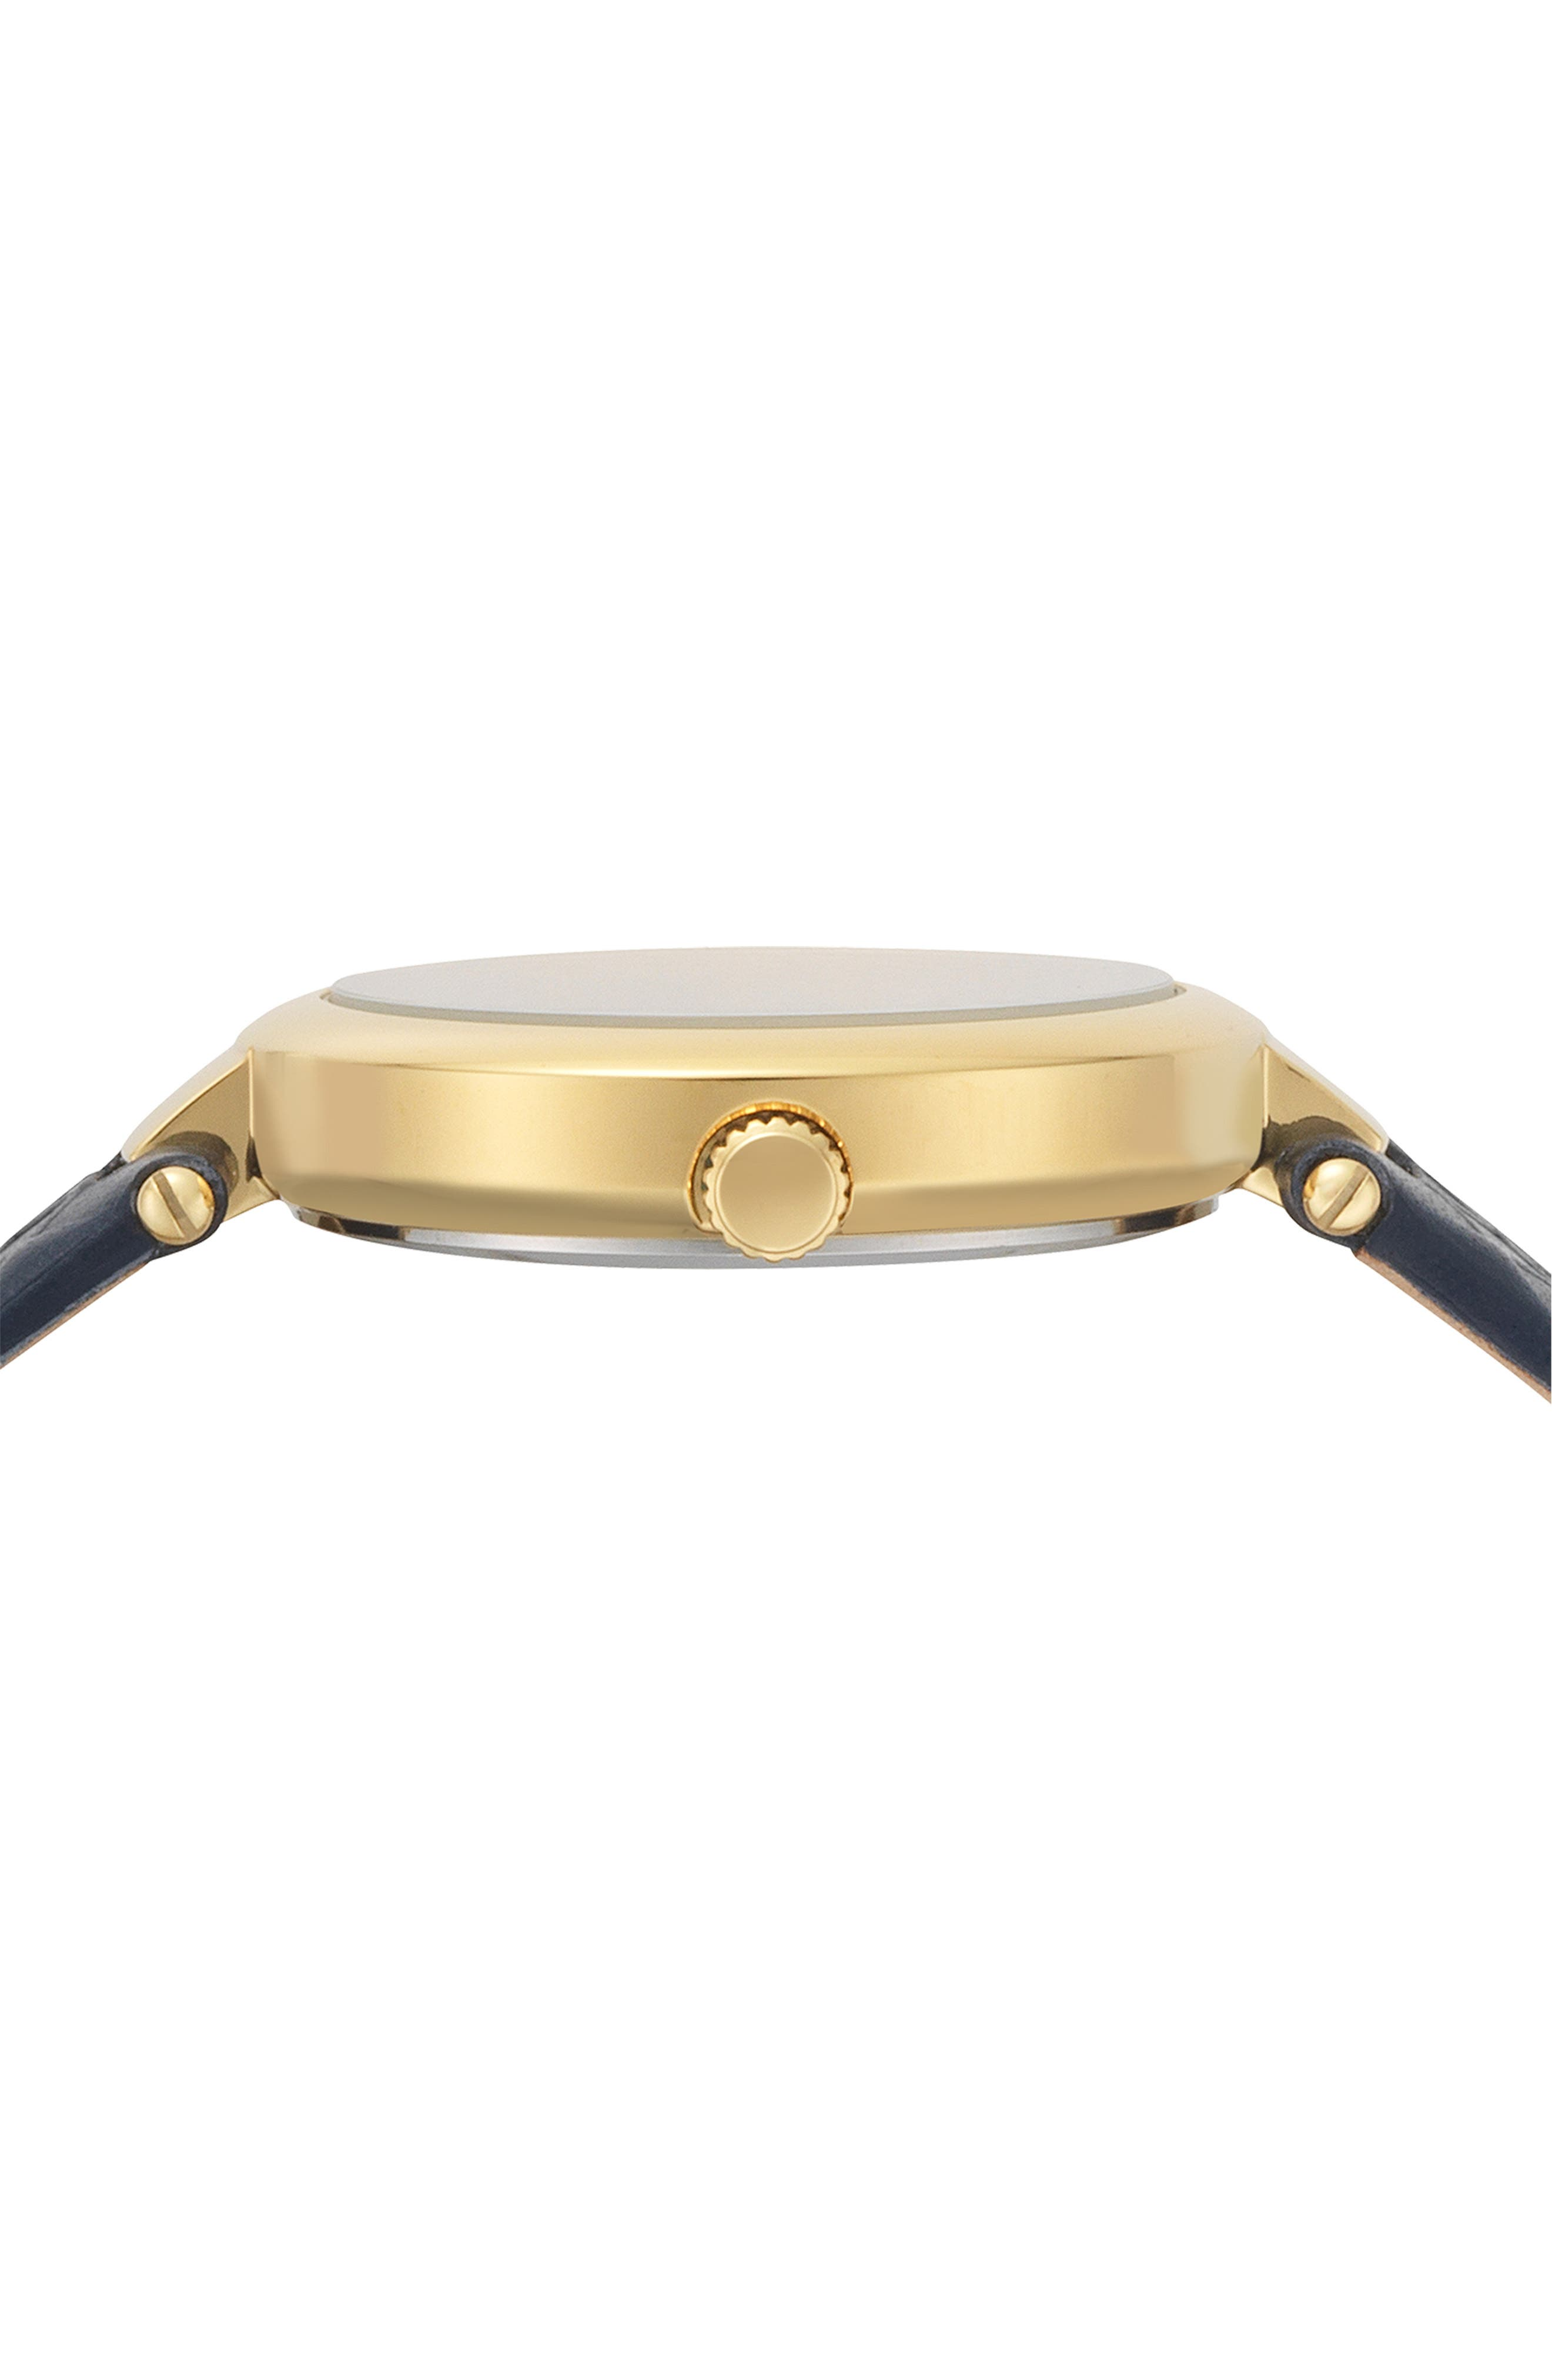 VERSUS VERSACE, Buffle Bay Leather Strap Watch, 36mm, Alternate thumbnail 2, color, BLUE/ GOLD